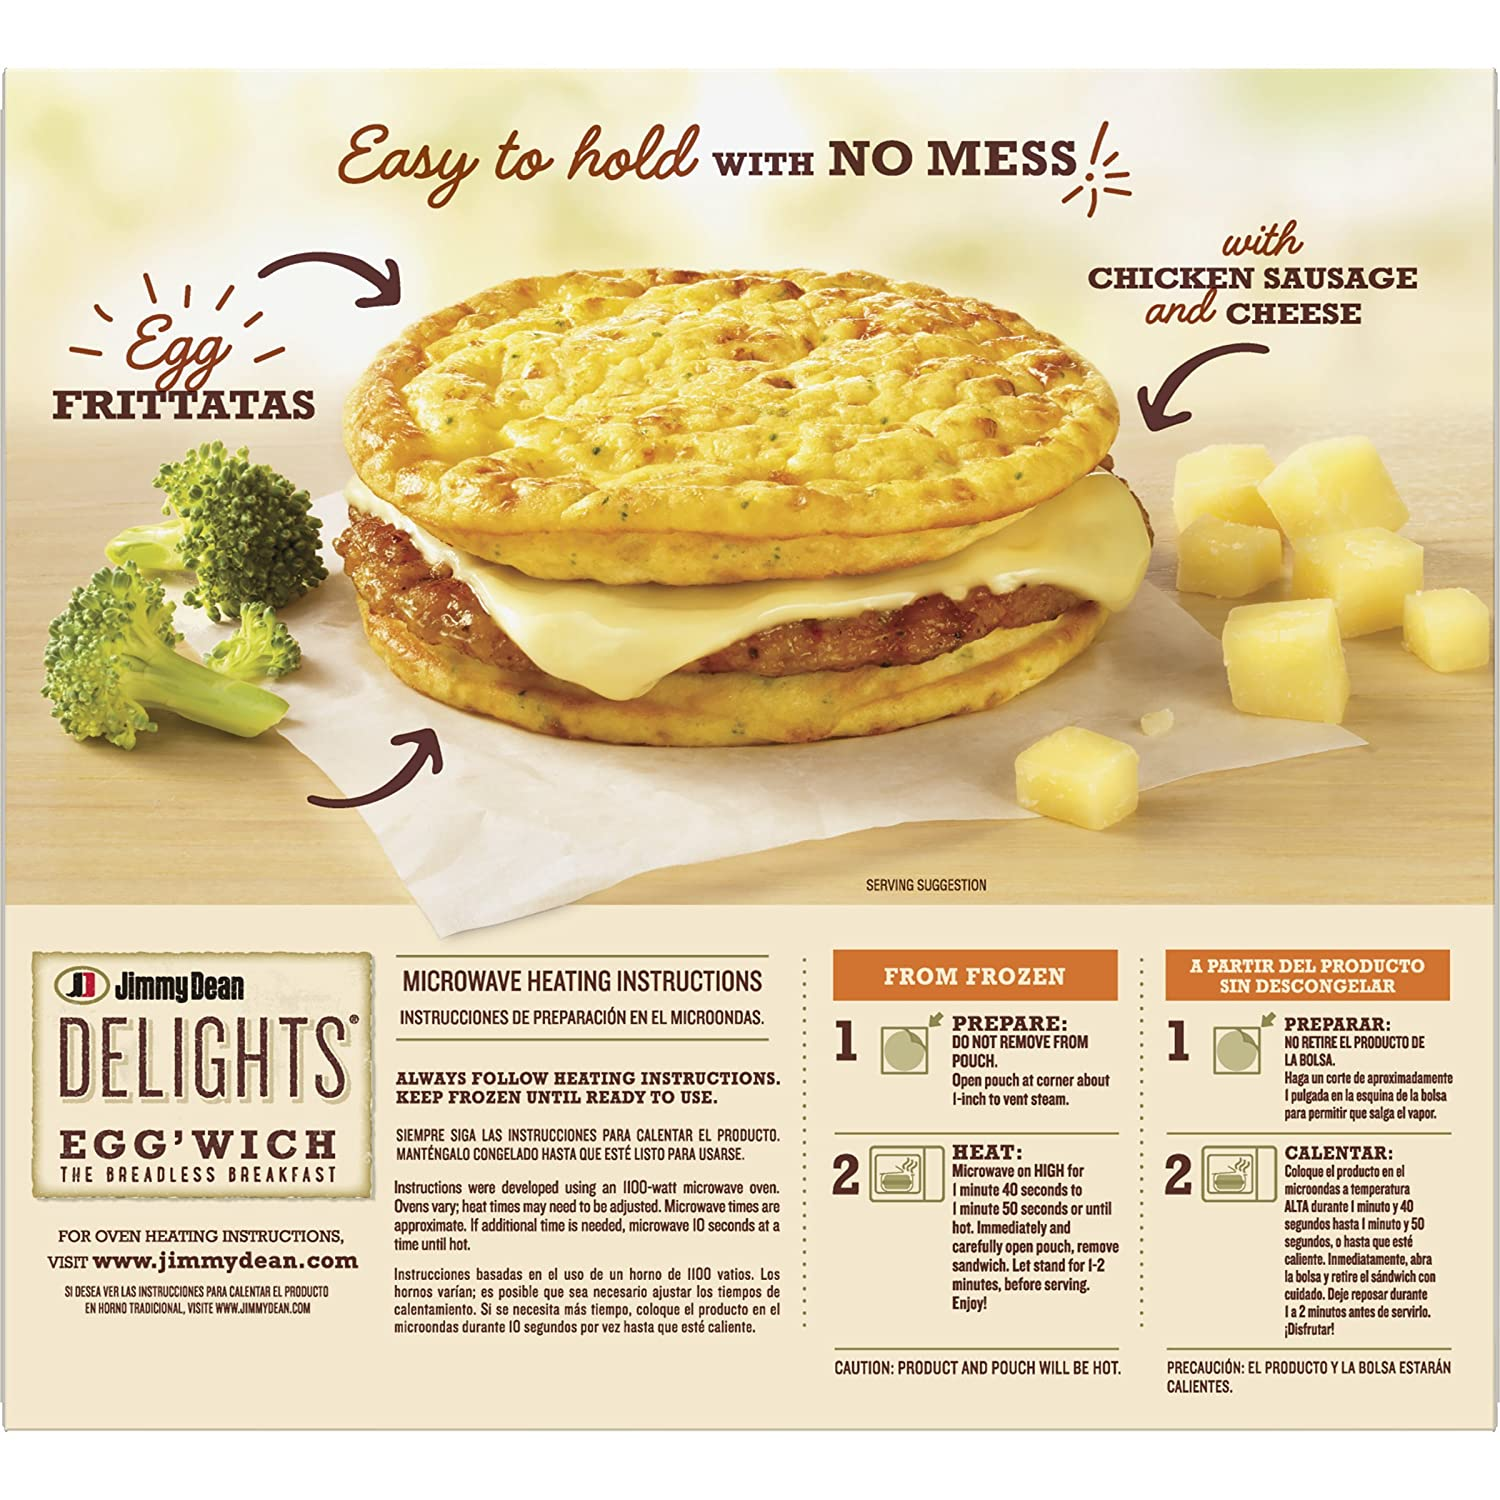 Jimmy Dean Delights Broccoli Cheese Eggwich, 4 Count: Amazon.com: Grocery & Gourmet Food